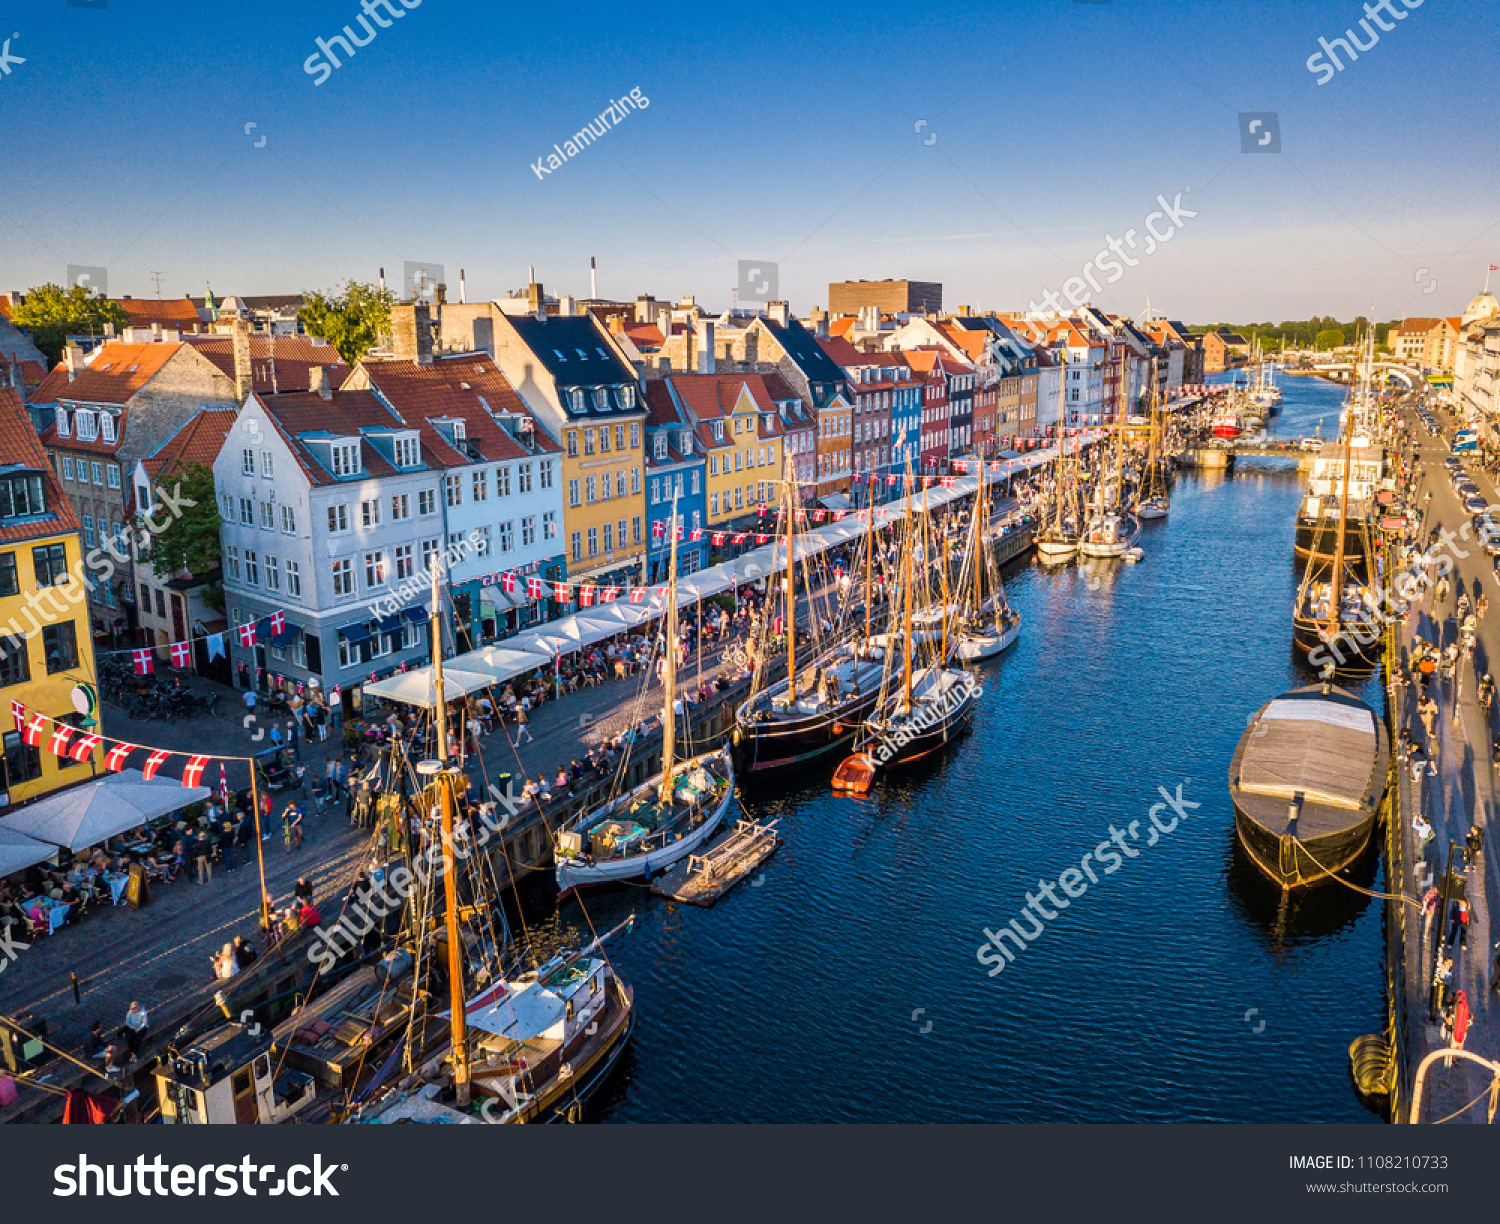 Beautiful historical city center. Nyhavn New Harbour canal and entertainment district in Copenhagen, Denmark. The canal harbours many historical wooden ships. Aerial view from the top. #1108210733